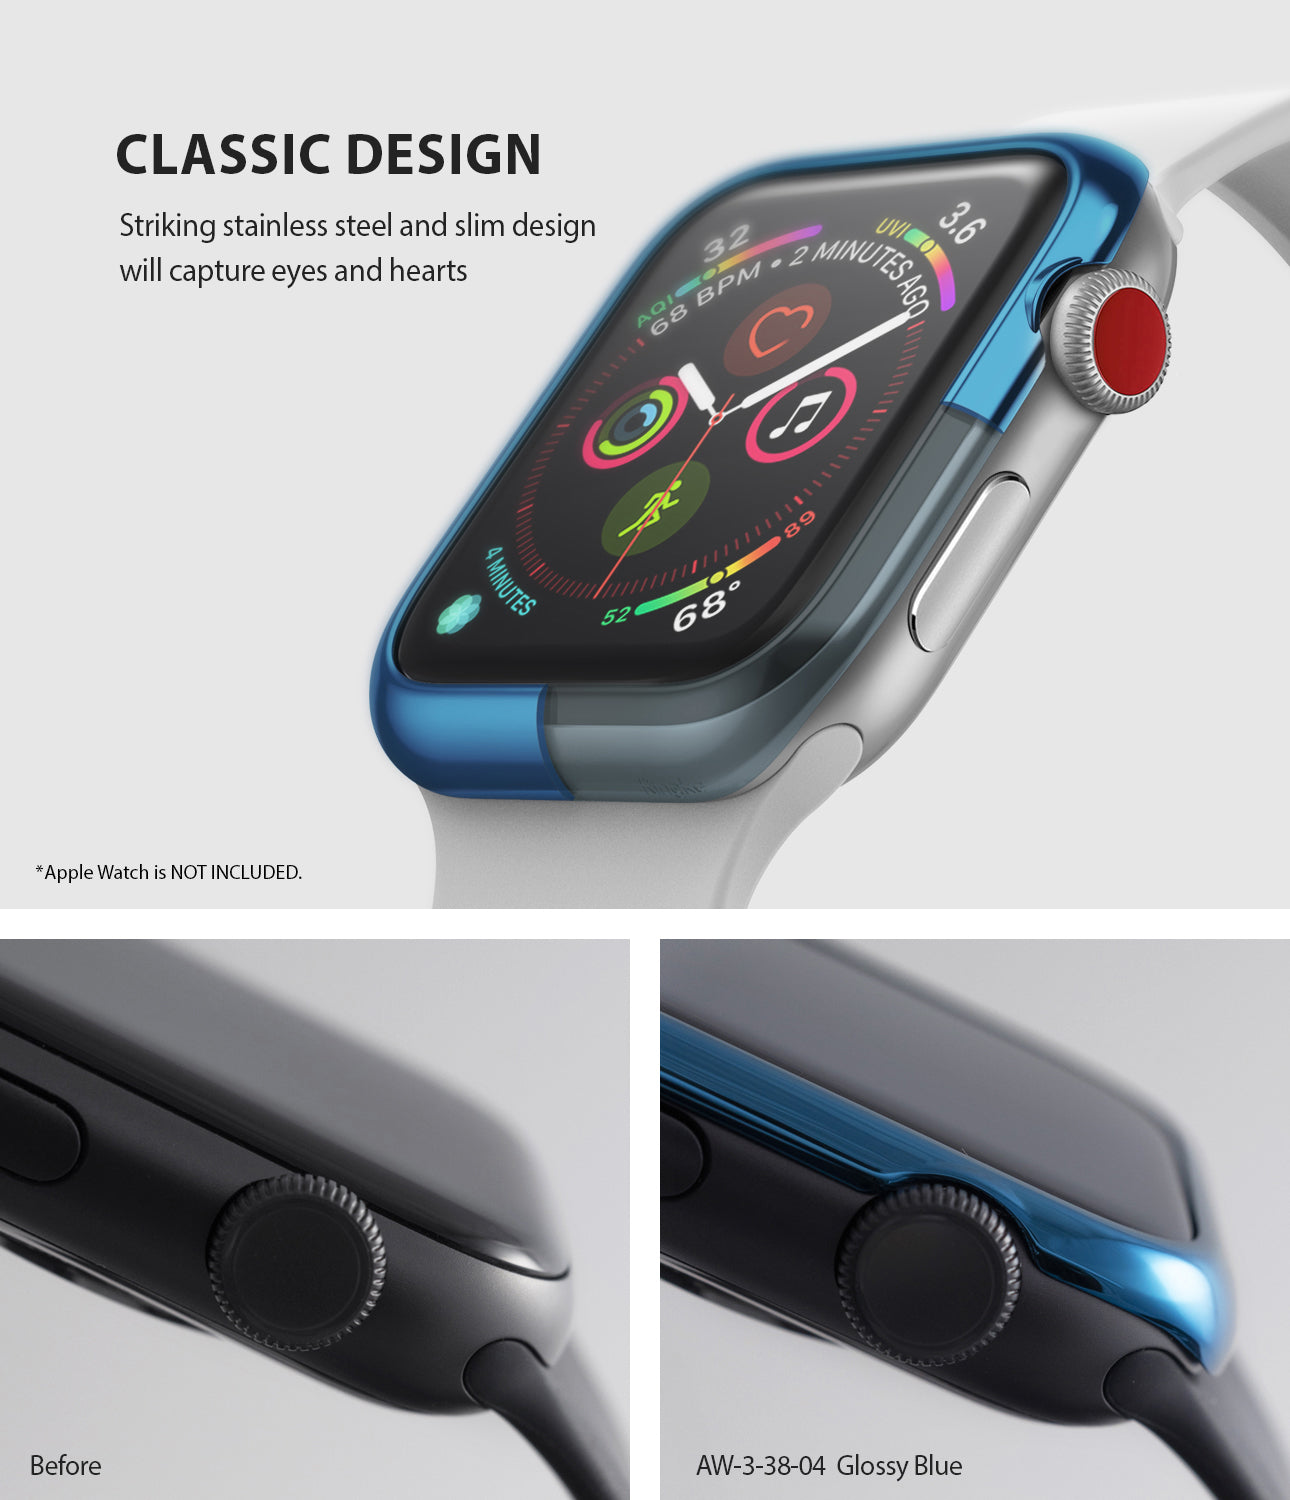 apple watch 3 2 1 38mm case ringke bezel styling stainless steel frame cover 38-04 classic design